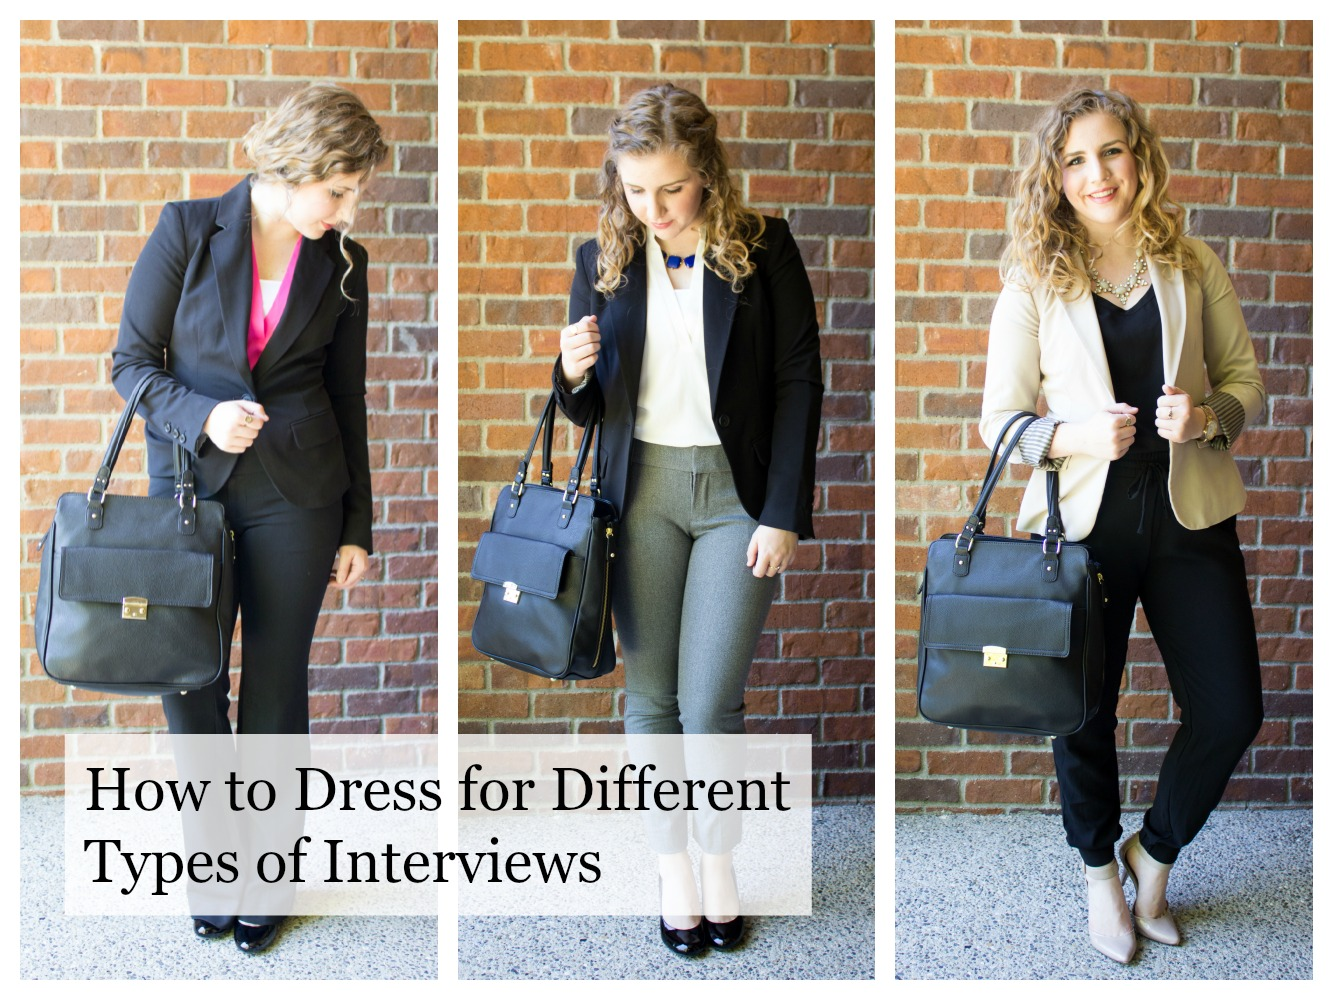 Tips on how to dress for different types of interviews